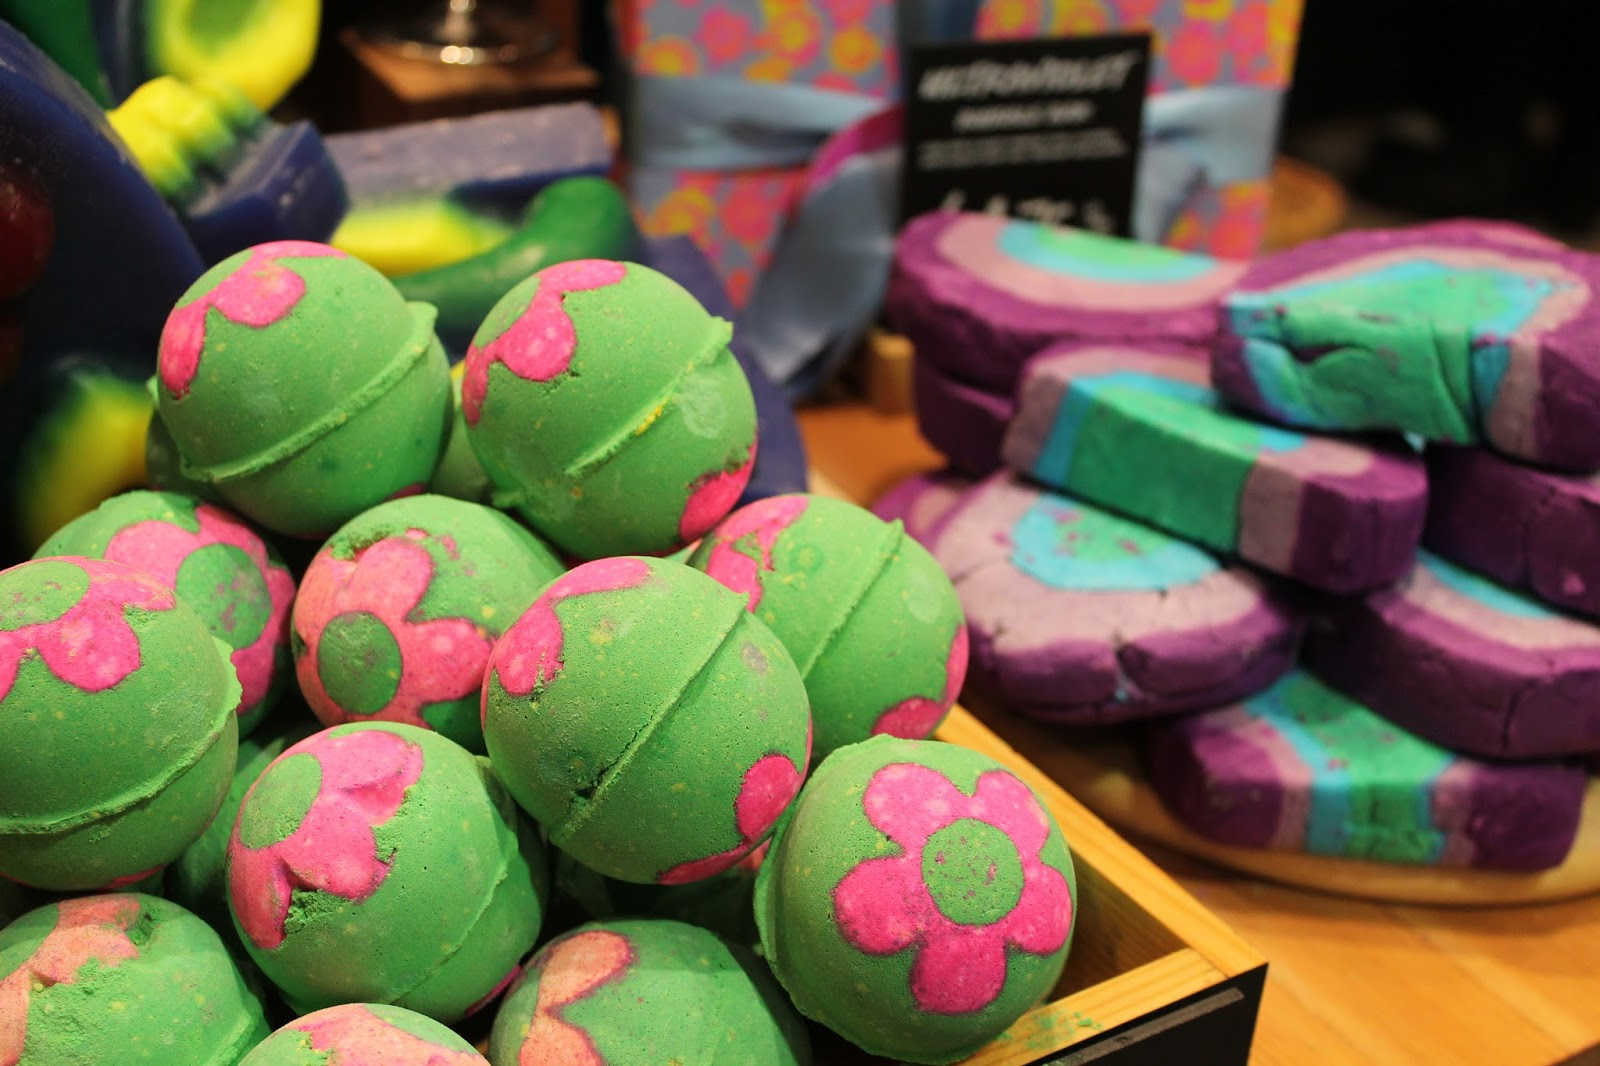 Lush Middlesbrough Blogger Event - Gorilla perfume volume 3 release